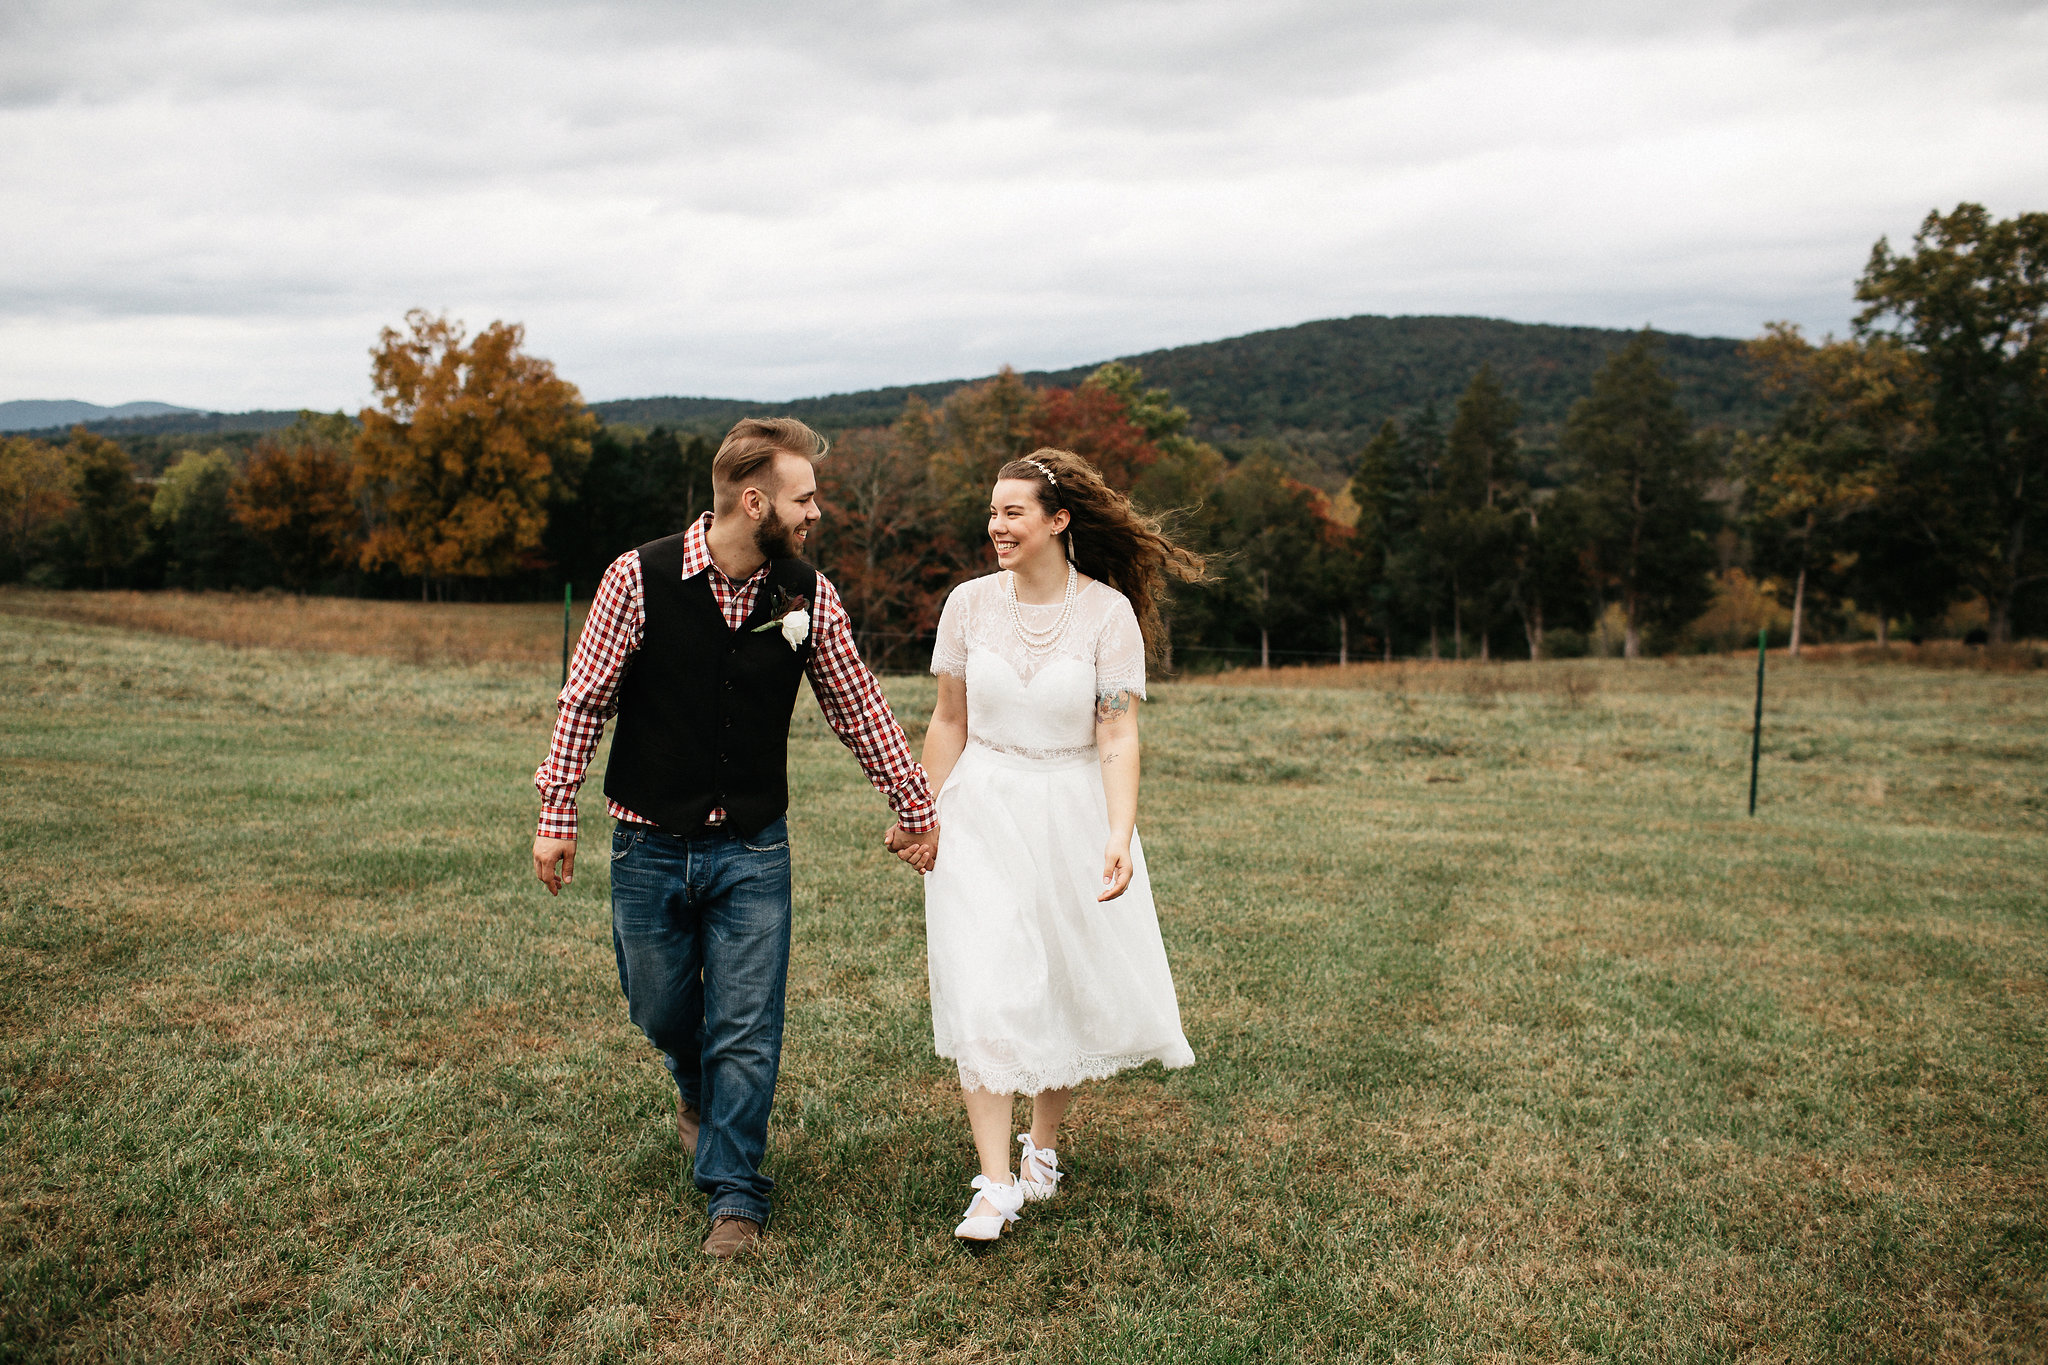 Caitlin&CodyMarried2017-11-03at19.19.40PM80.jpg